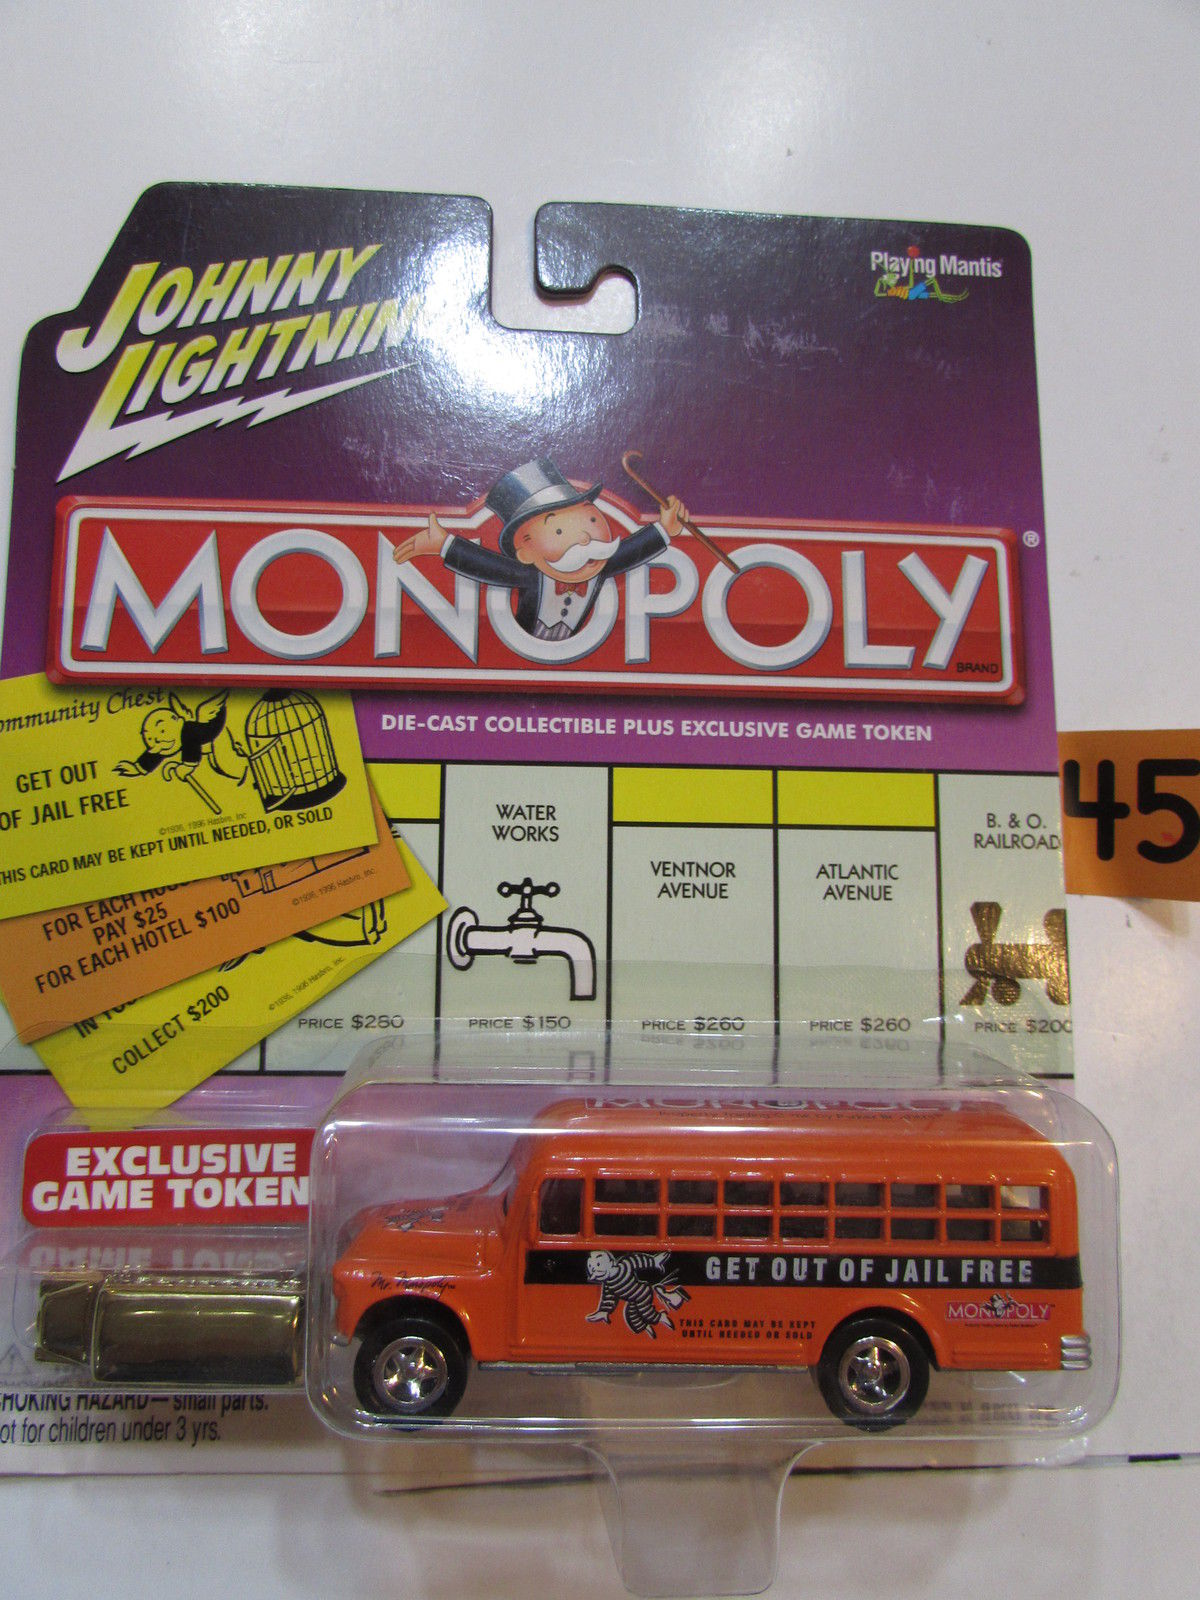 JOHNNY LIGHTNING MONOPOLY GET OUT OF JAIL FREE - '56 CHEVY BUS